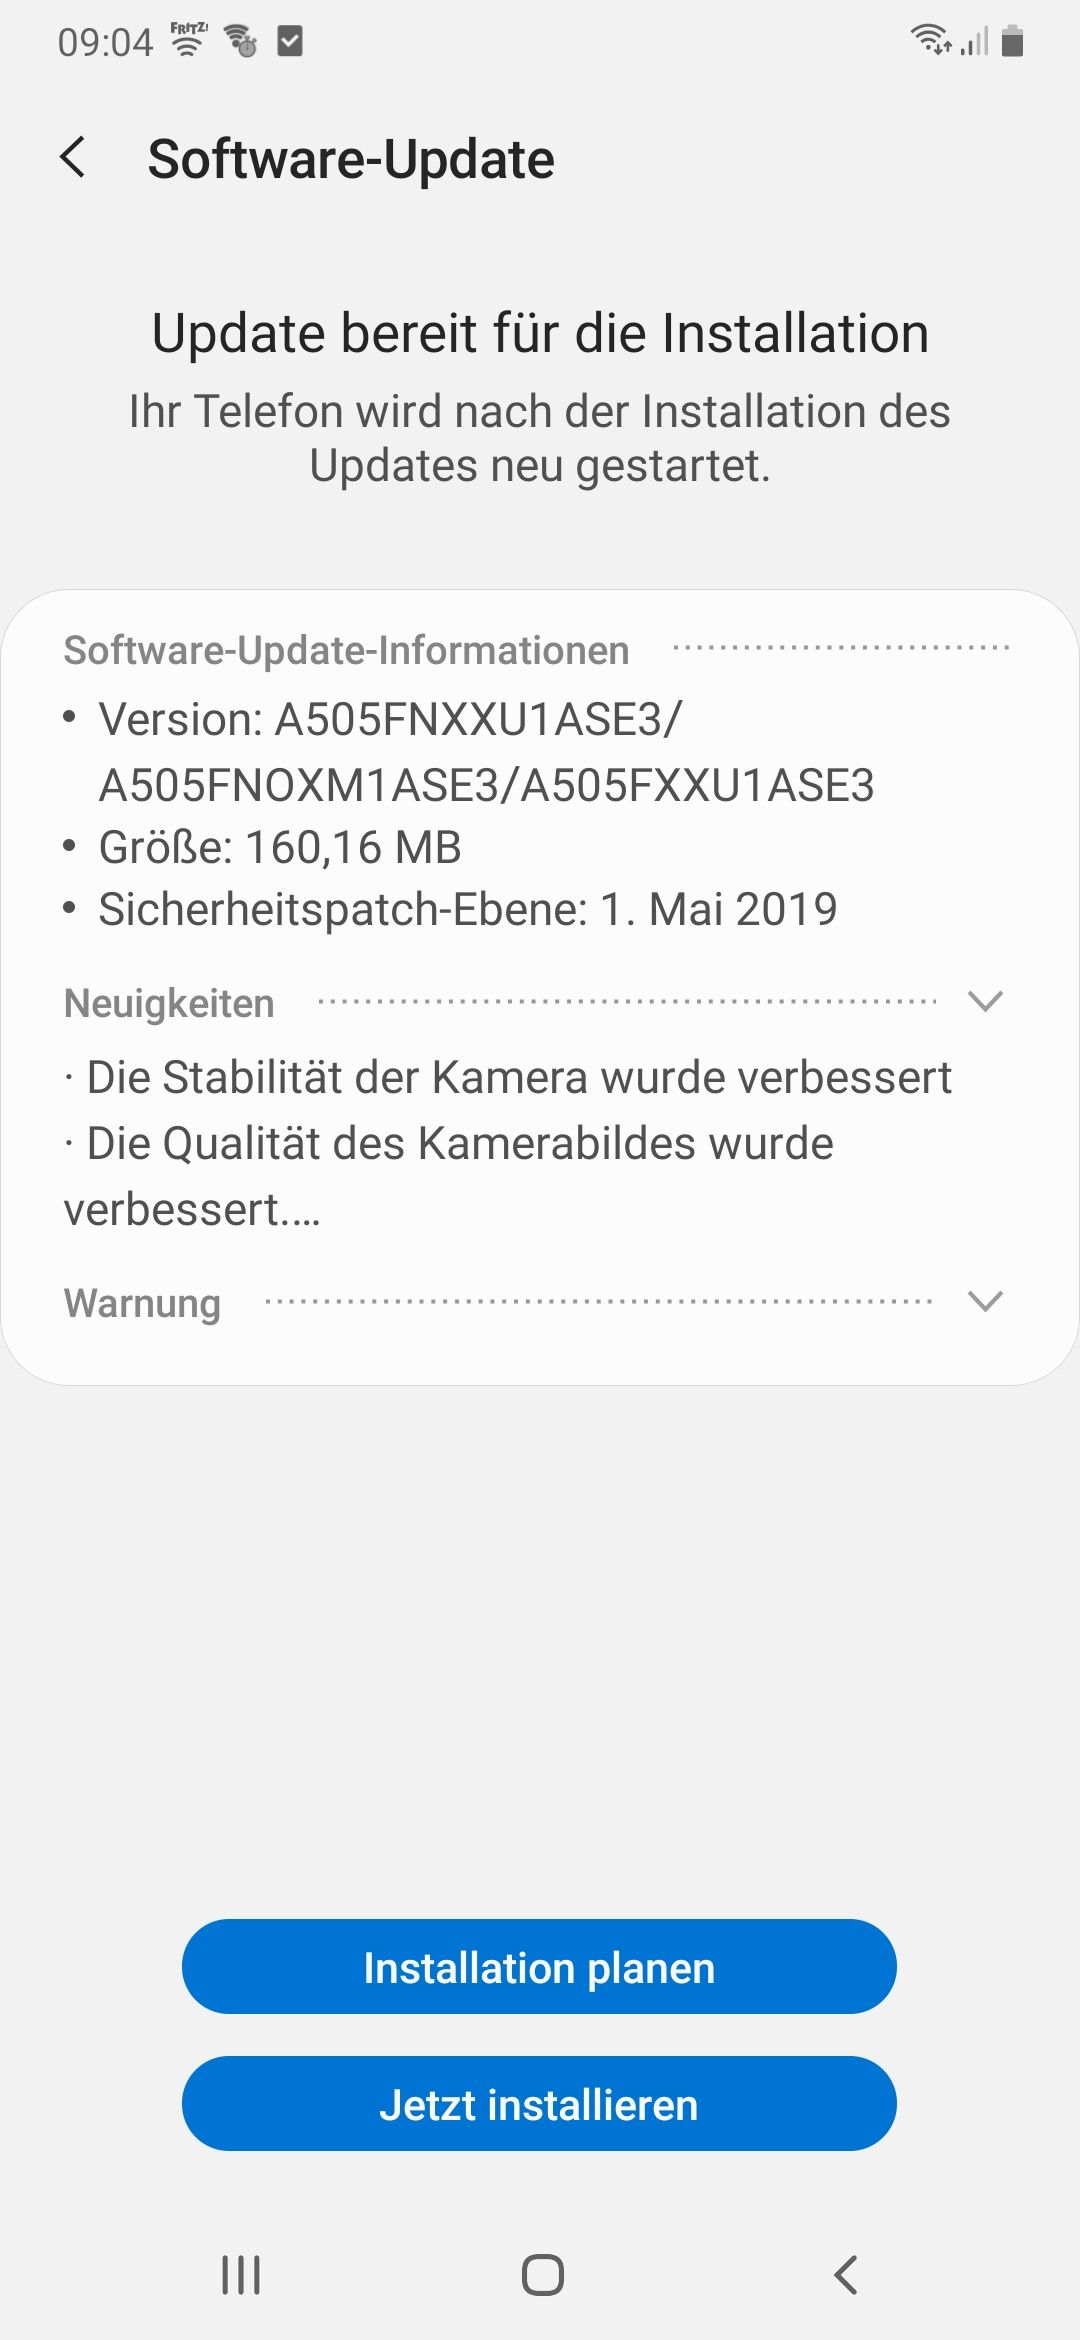 android wlan deaktiviert sich selbst